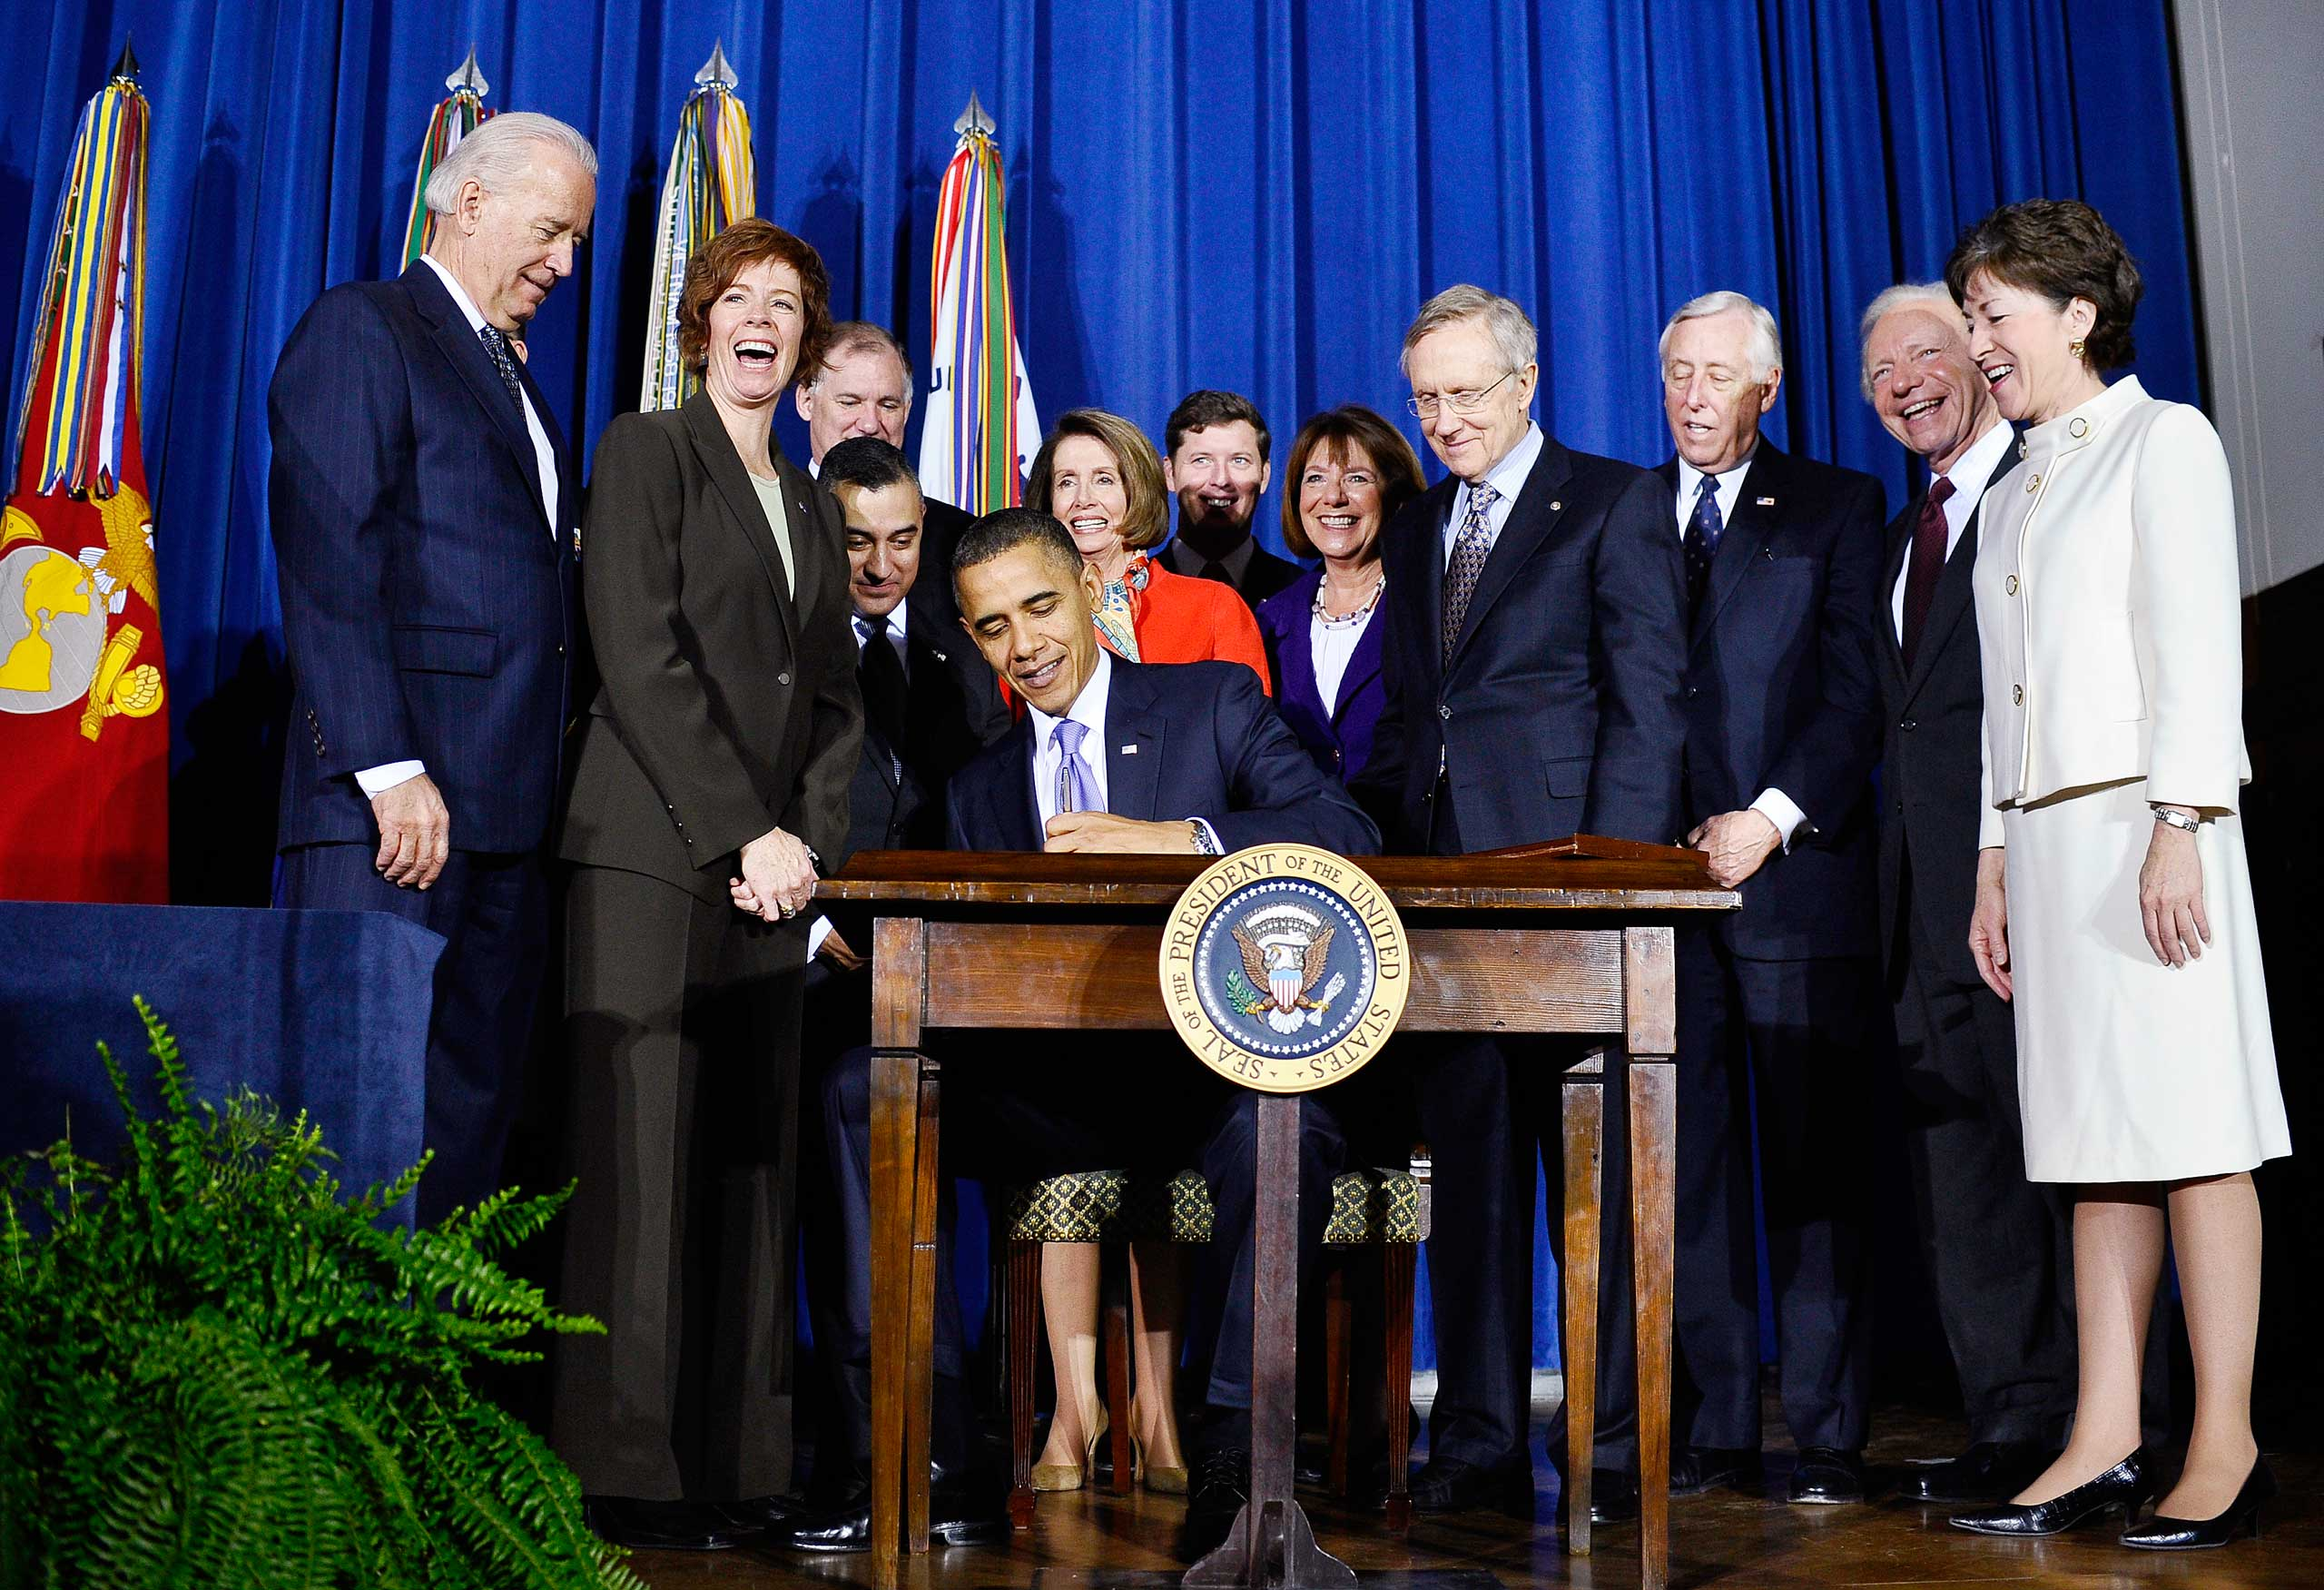 President Barack Obama  signs the Don't Ask, Don't Tell Repeal Act of 2010 into law at the Department of the Interior in Washington on Dec. 22, 2010.